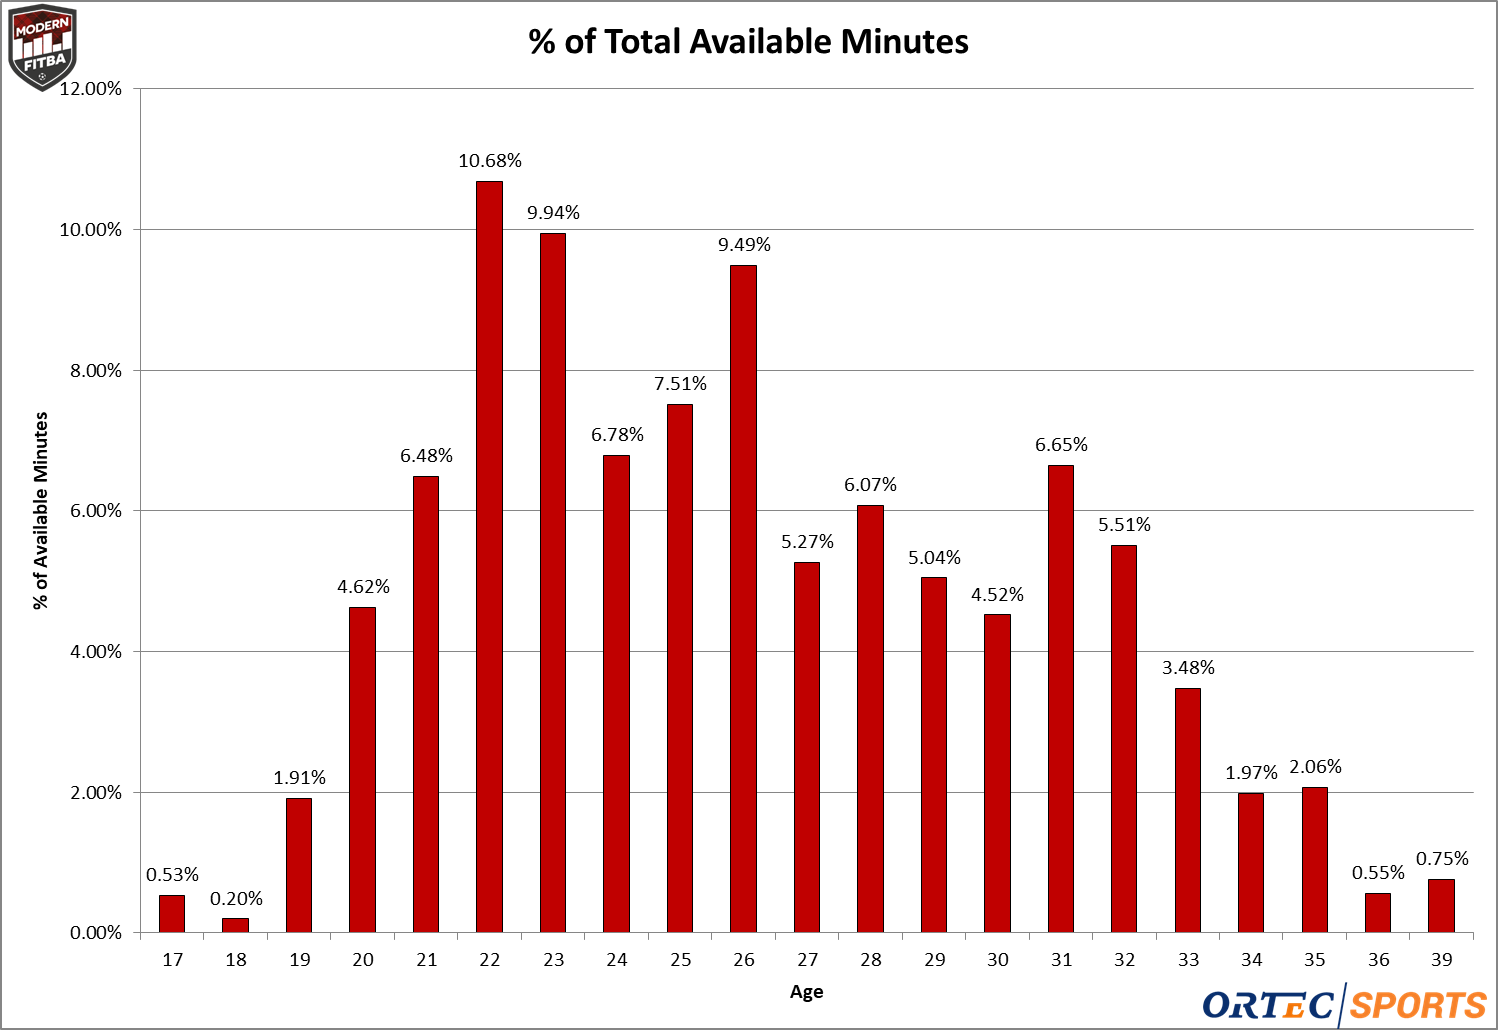 The percentage of total minutes played by age for the SPFL Premiership in 2018-19.